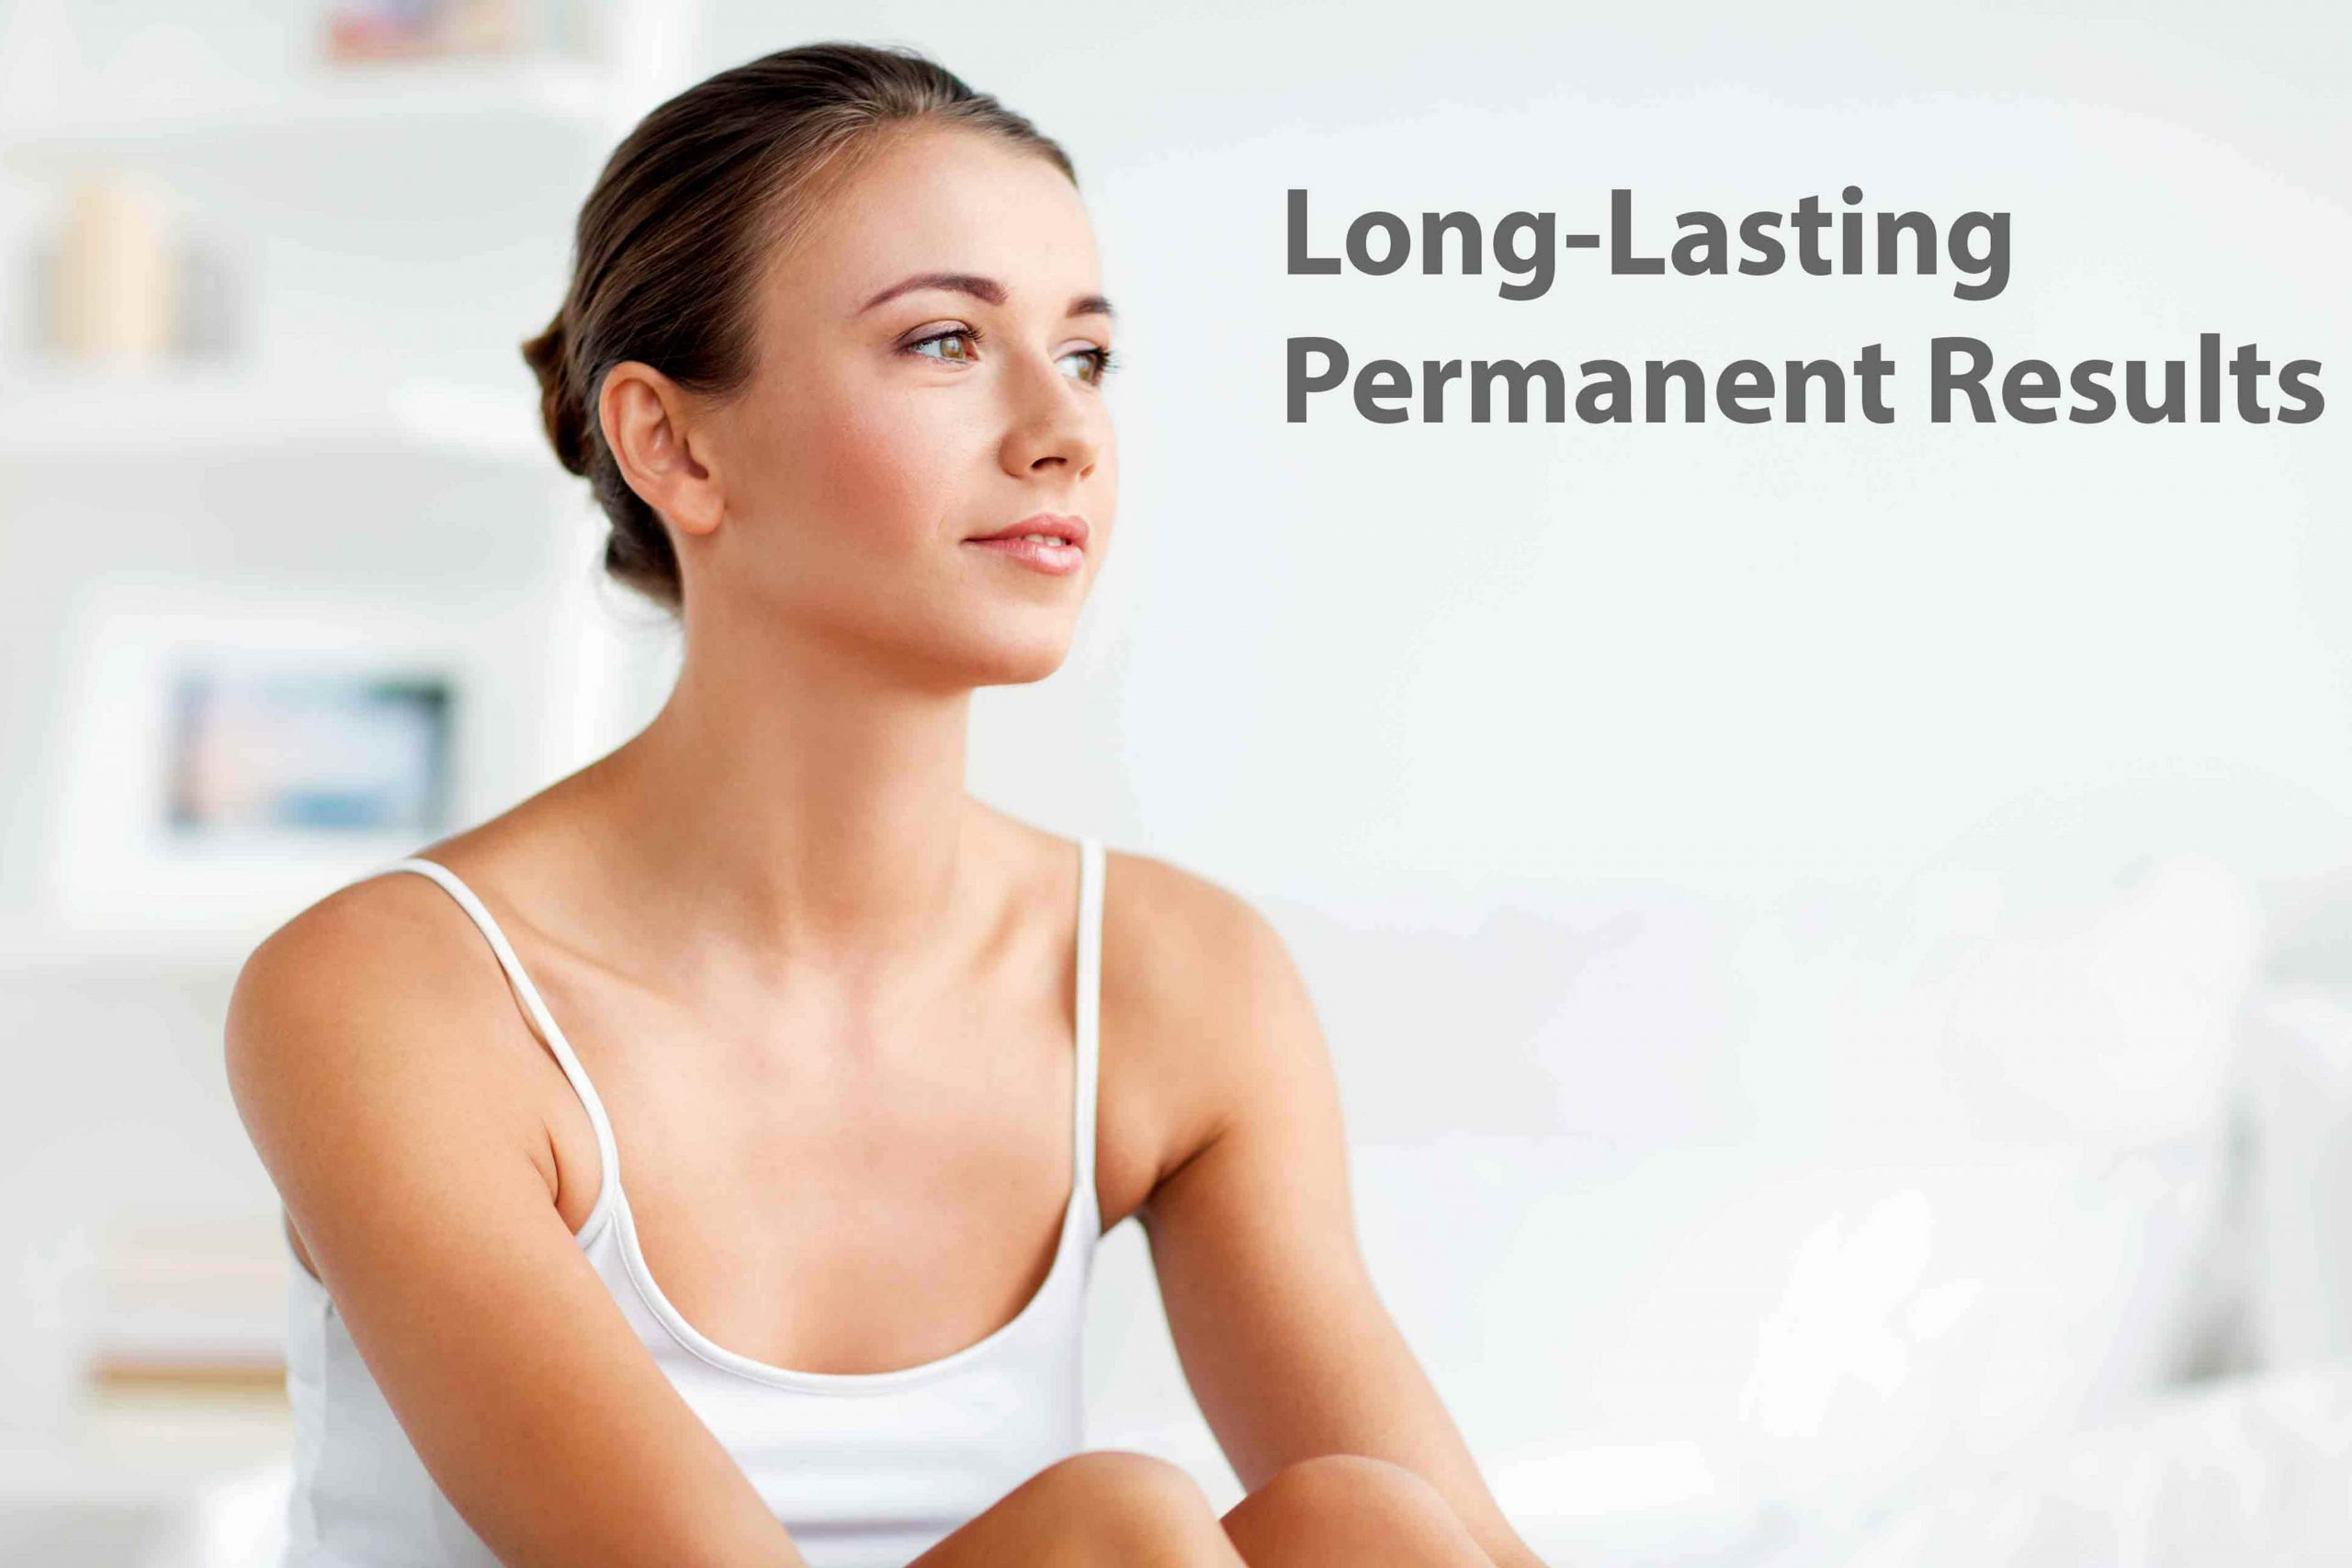 Long-Lasting Permanent Results